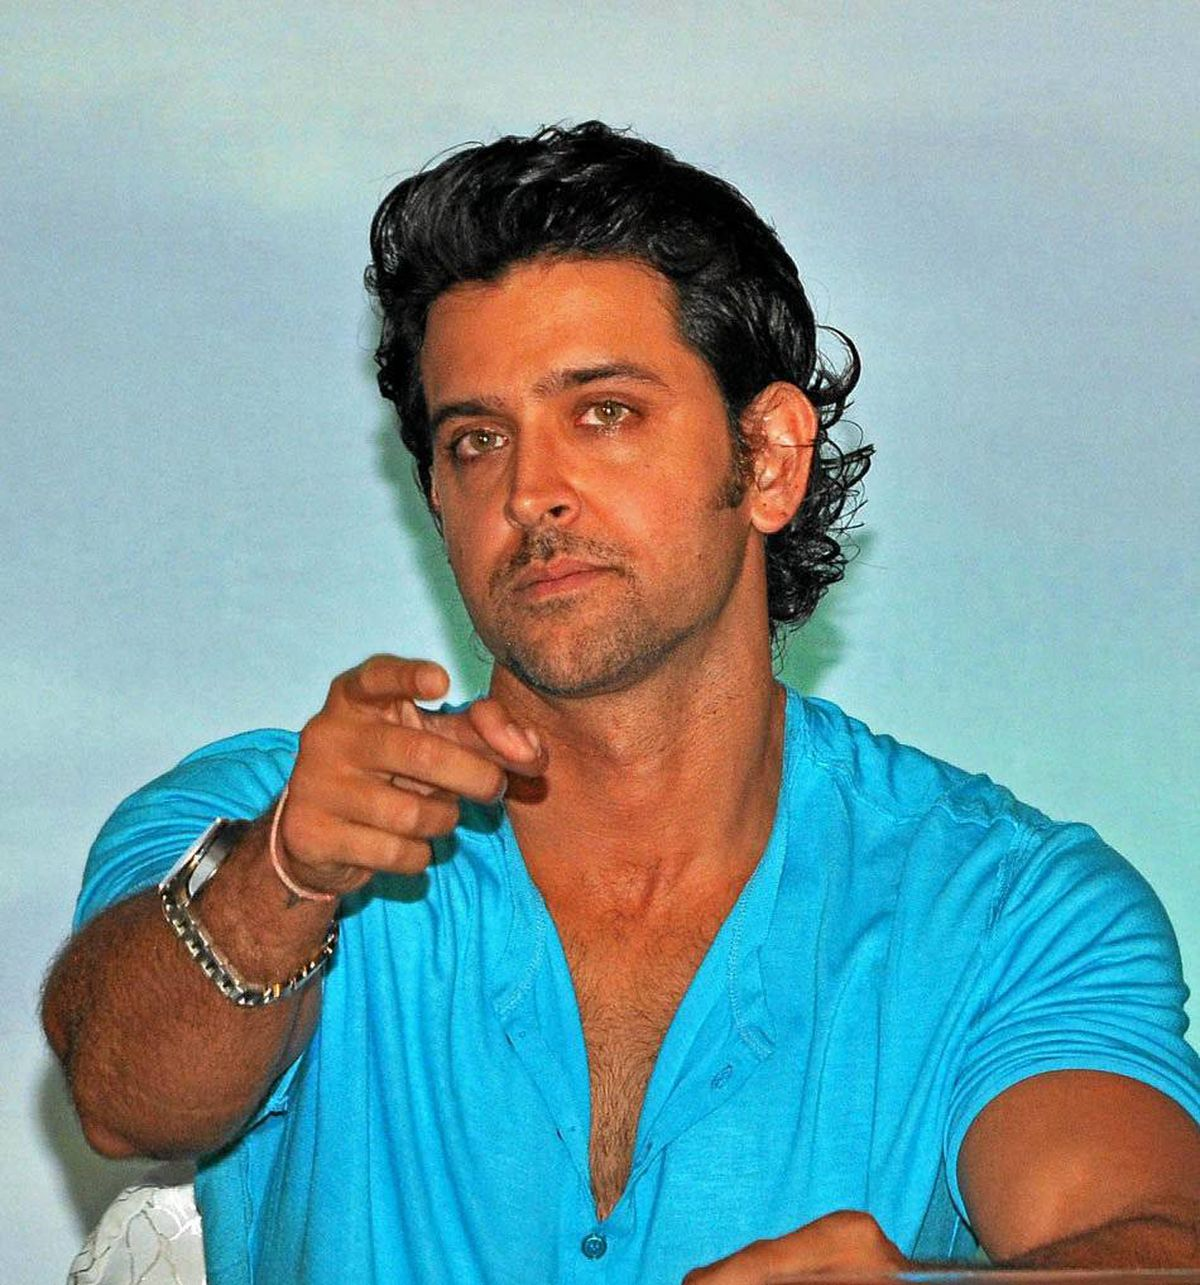 Hritik Roshan stars in the Hindi film 'Zindagi Na Milegi Dobara,' directed by Zoya Akhtar.